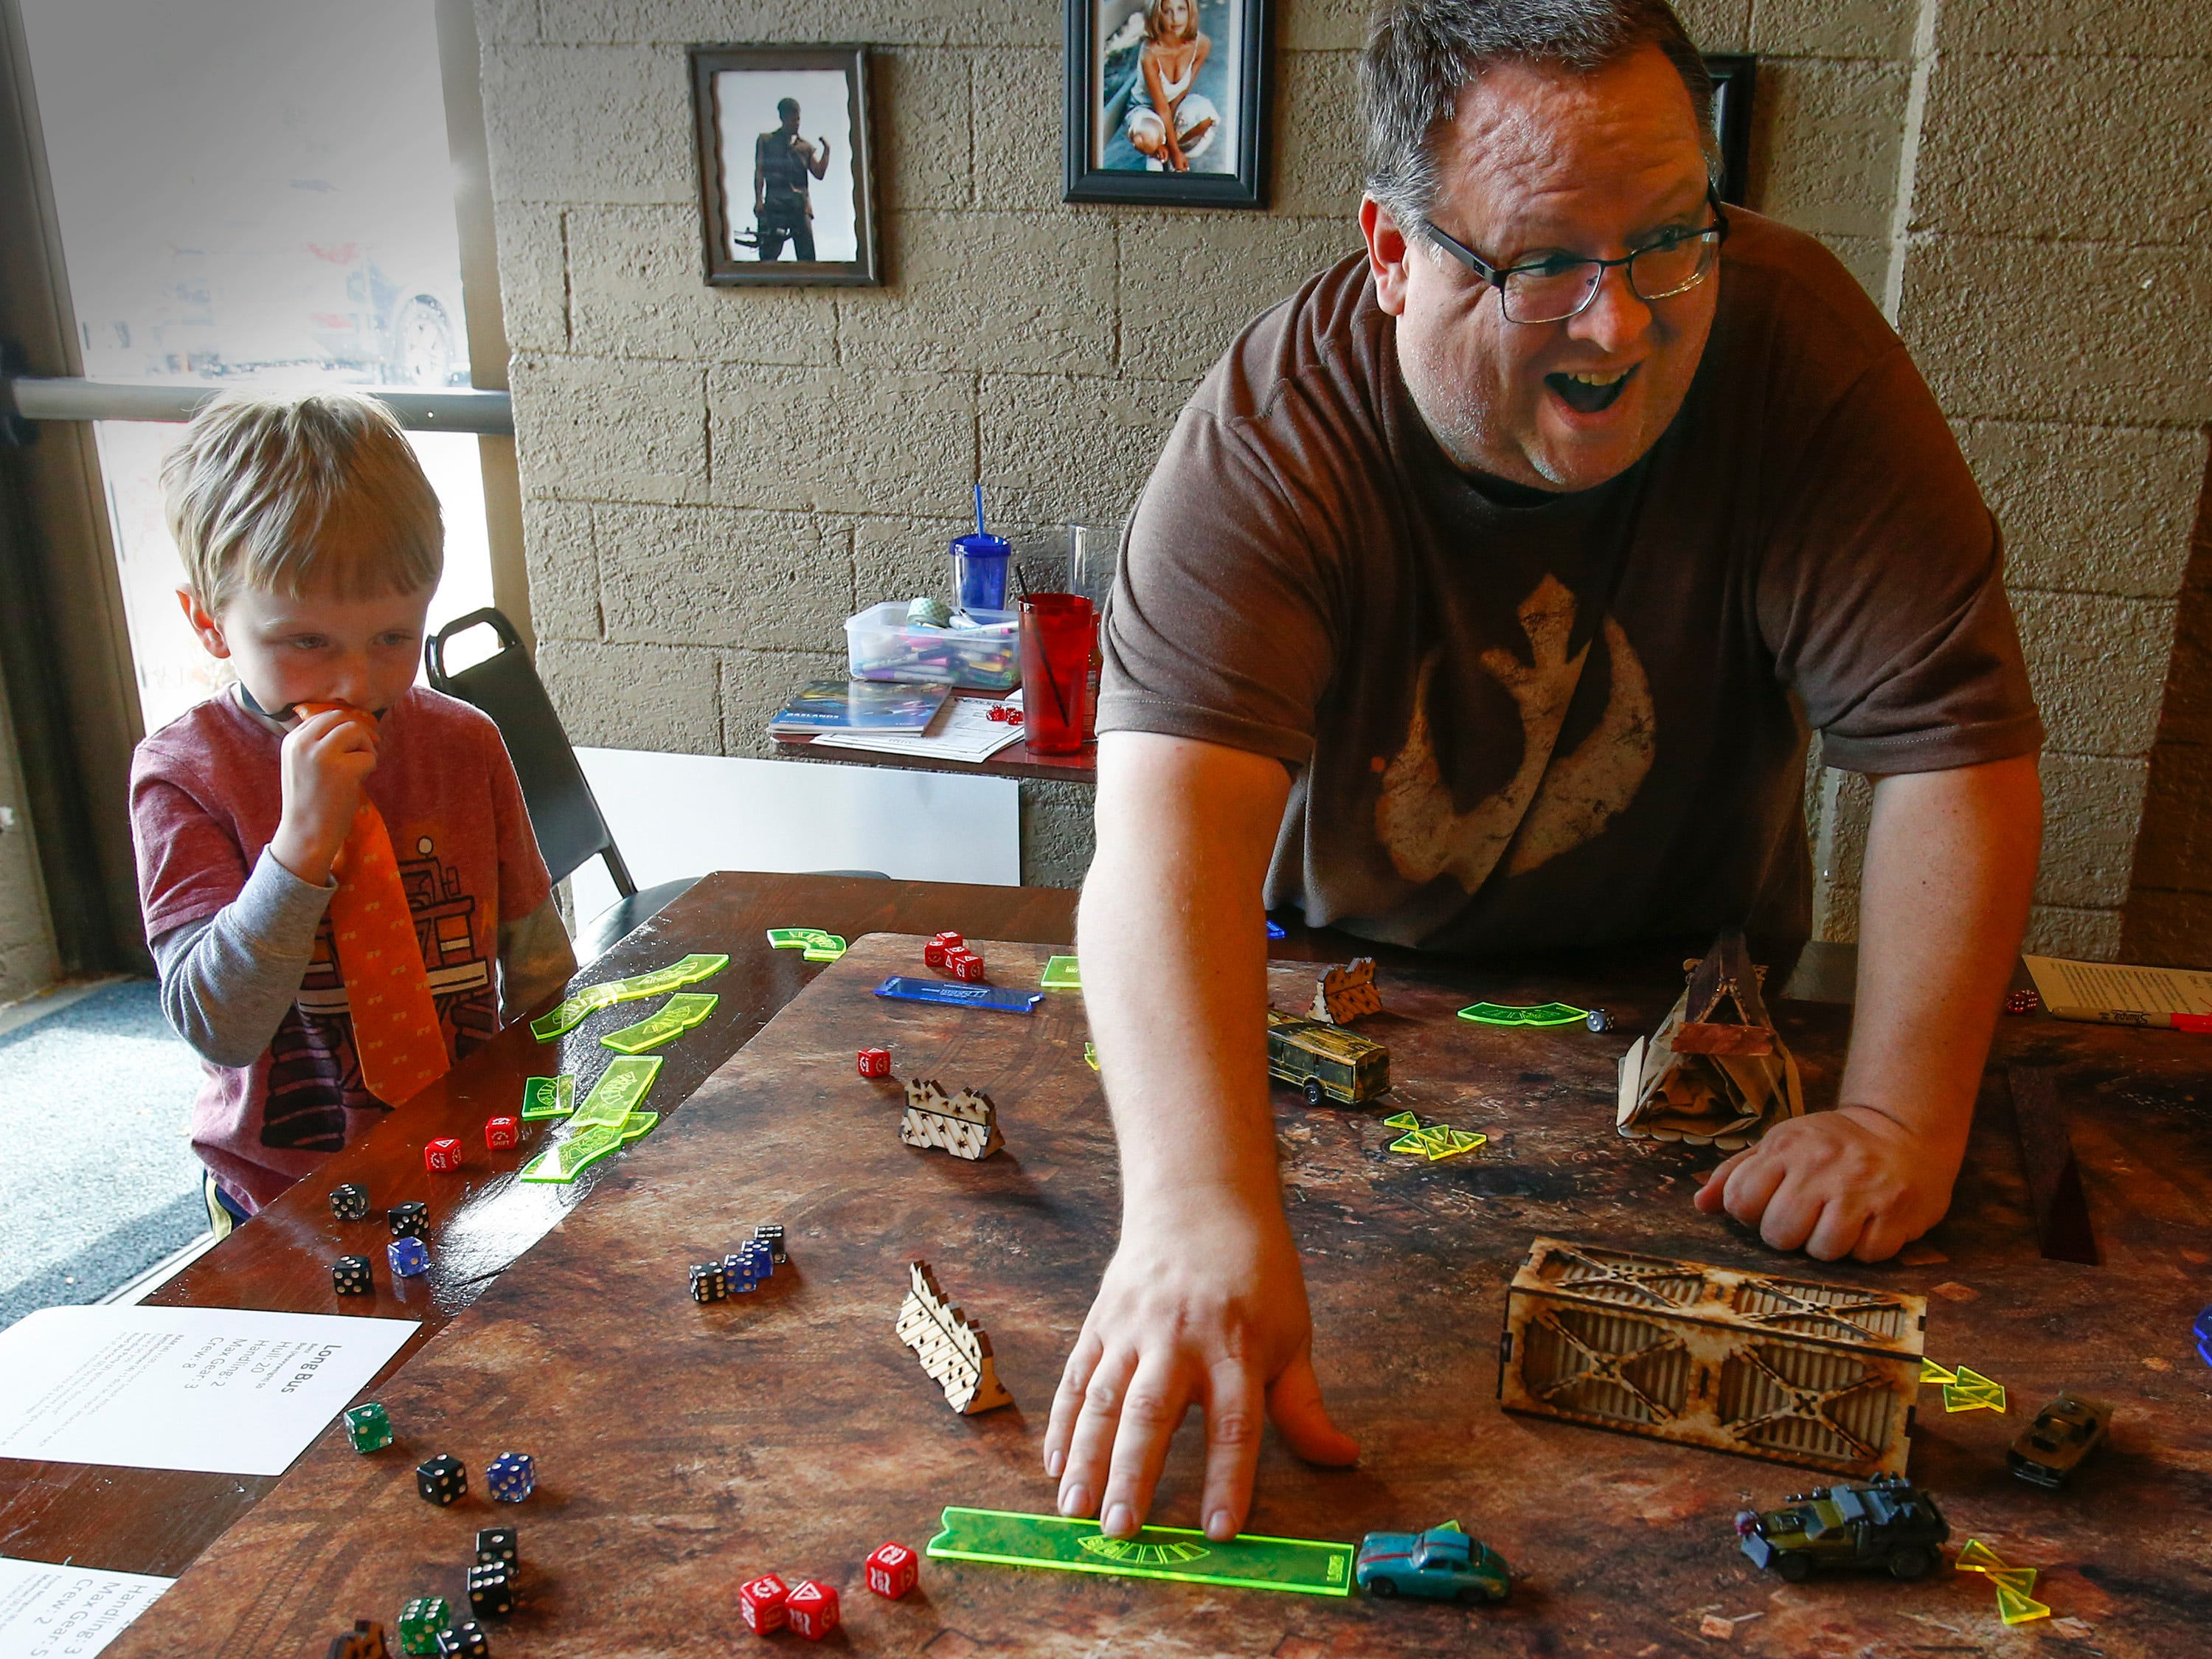 Riley Koemen, 5, of Hales Corners is not to sure about a move by Paul Dworschack-Kinter (right) in a round of the tabletop game Gaslands during a 12-hour Game-A-Thon hosted by FORGE, Feminist Organization for Rebel Geek Empowerment, to benefit Children's Hospital of Wisconsin at 42 Ale House in St. Francis on Nov. 3.